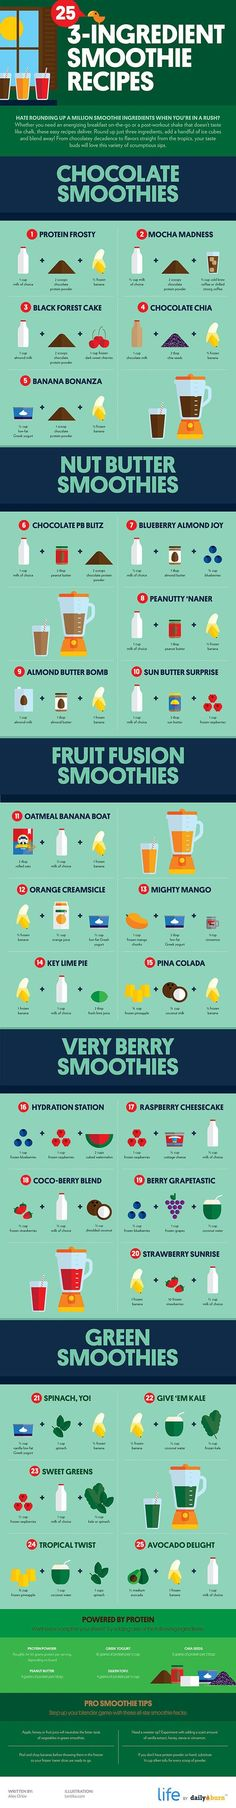 22 Awesome Diagrams That Will Make Healthy Eating A Whole Lot Easier.